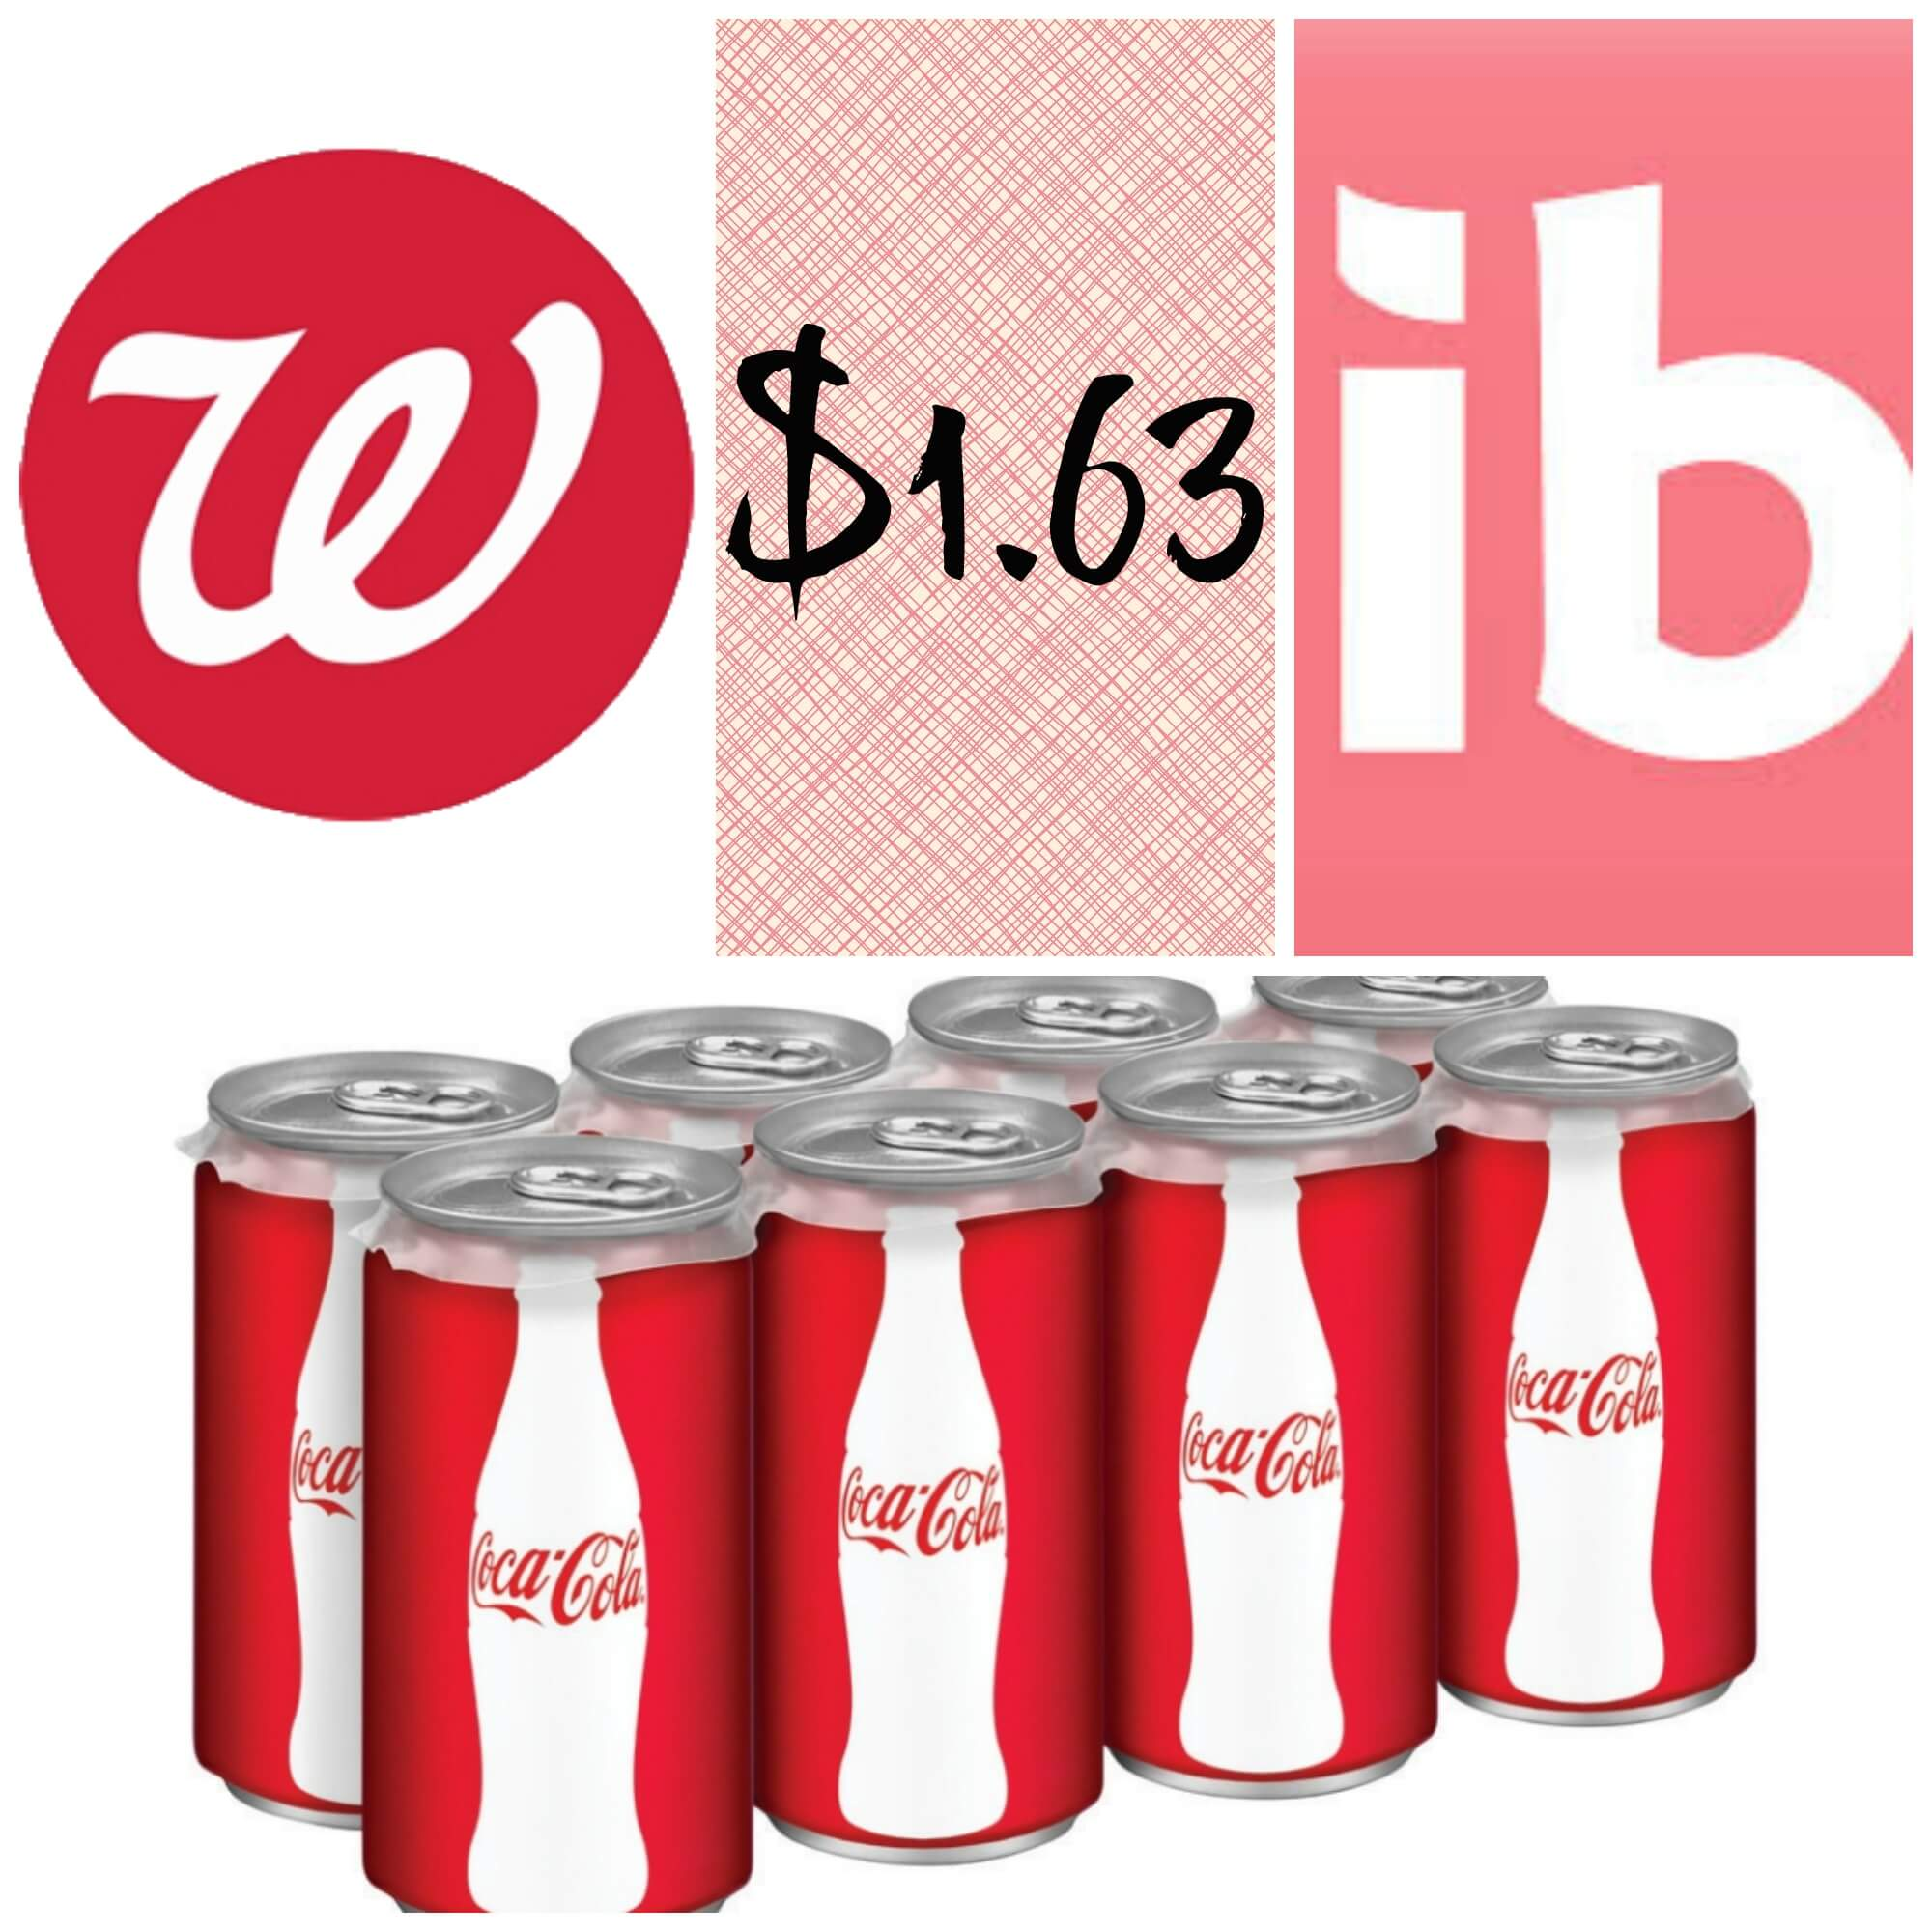 photograph regarding Coca Cola Printable Coupons known as Contemporary Coupon! 8-Pack Coca-Cola Mini Cans Particularly $1.63 at